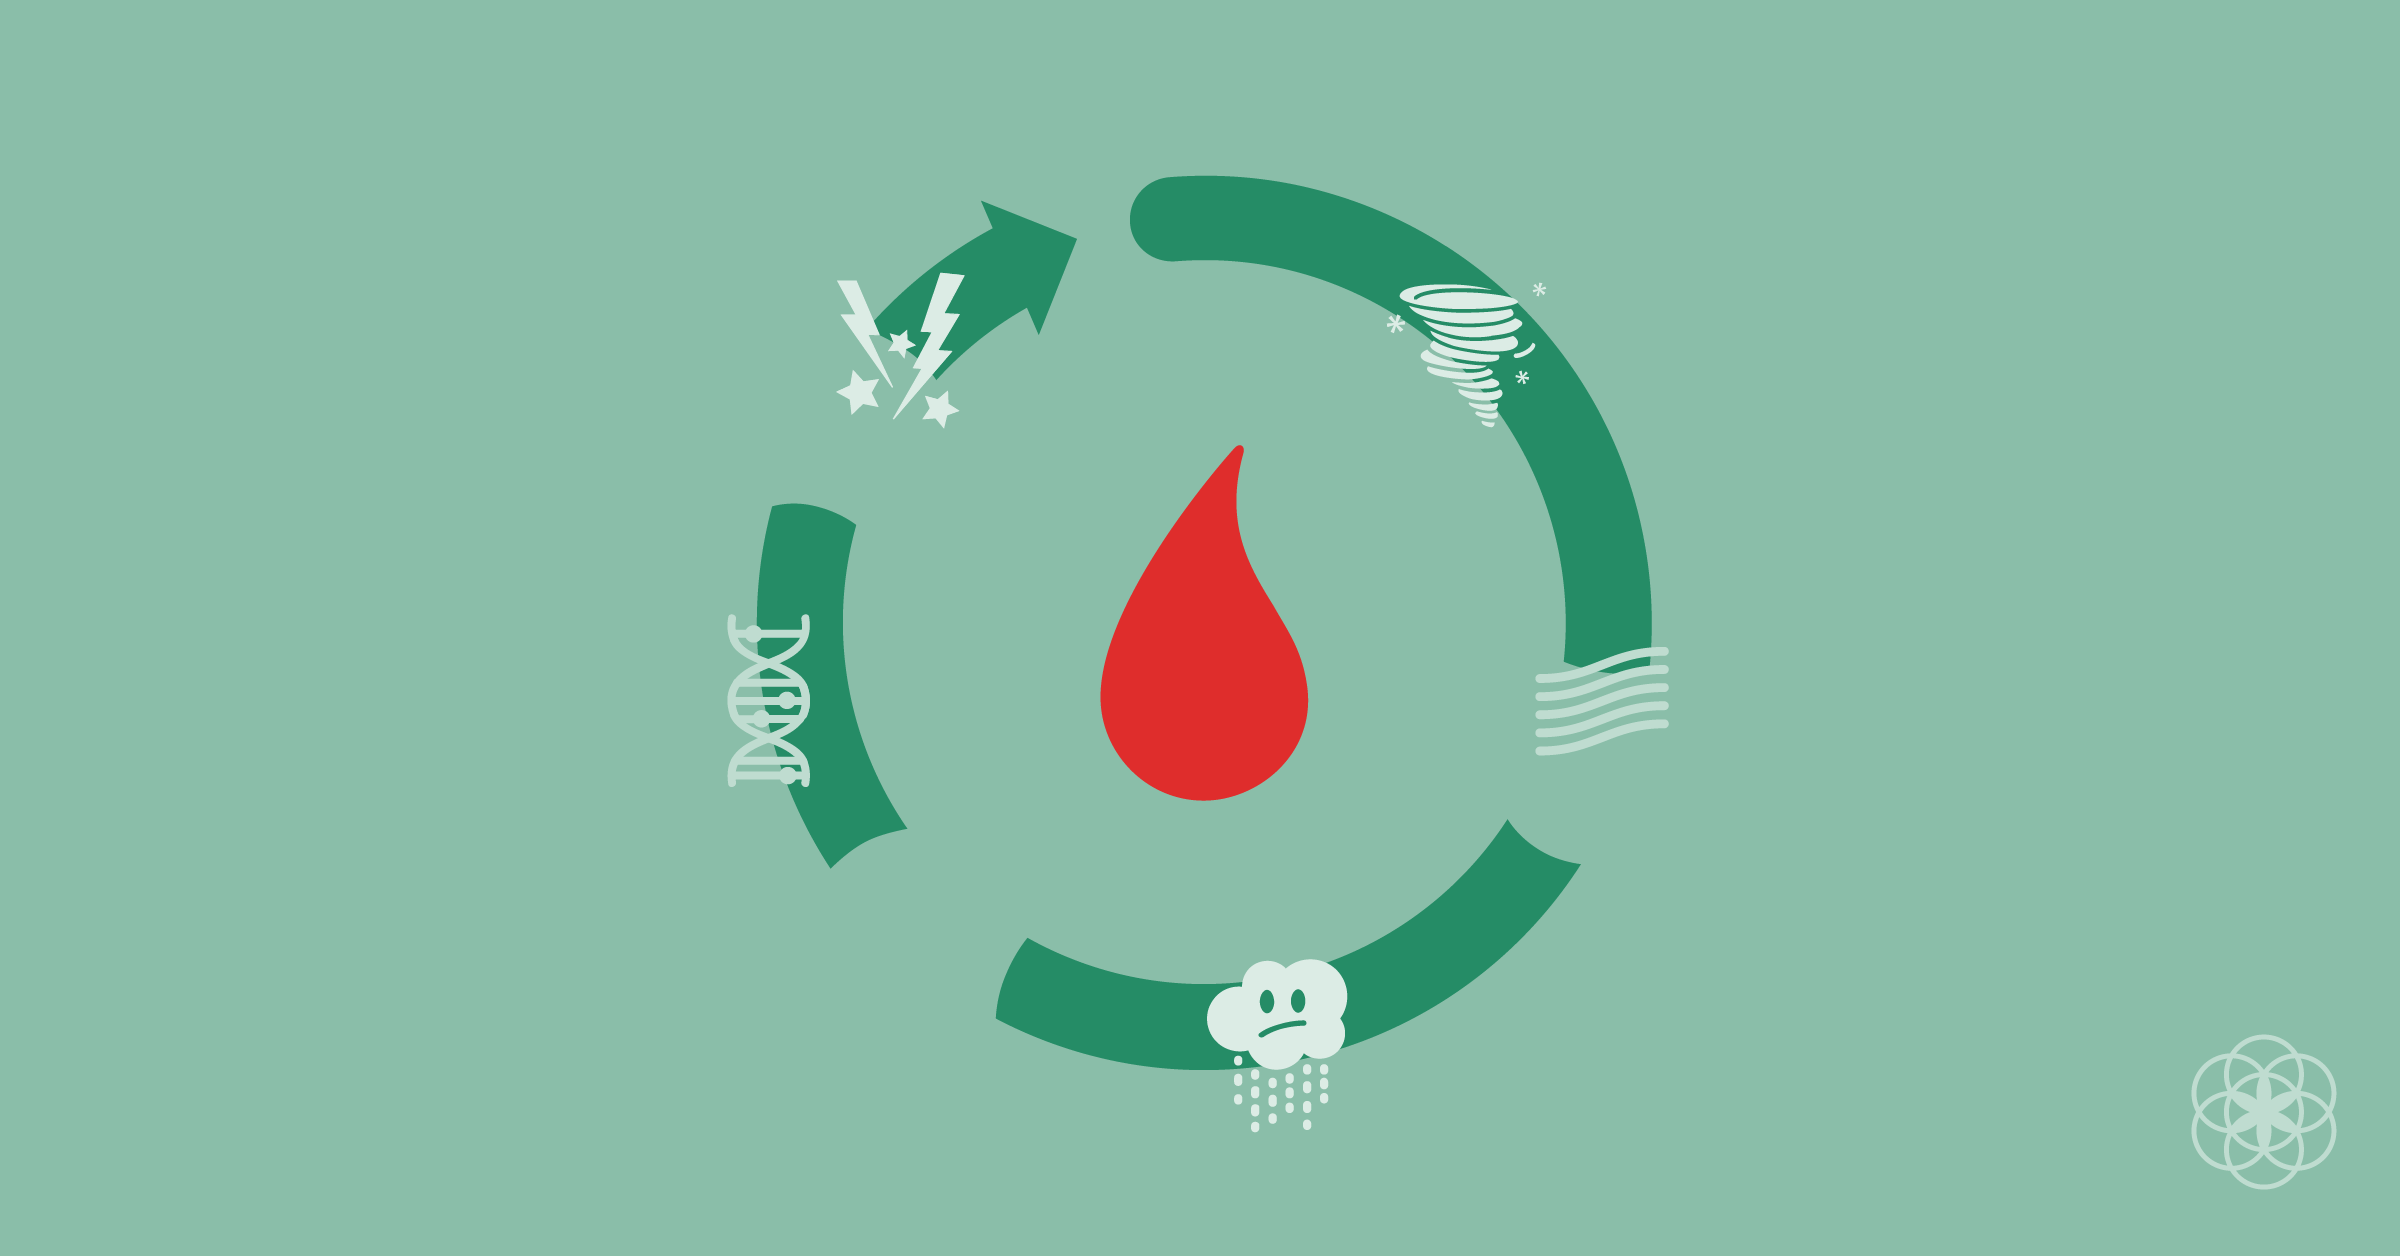 A fragmented green circle around a period blood drop, with symbols representing pain, pms, sadness, and DNA.